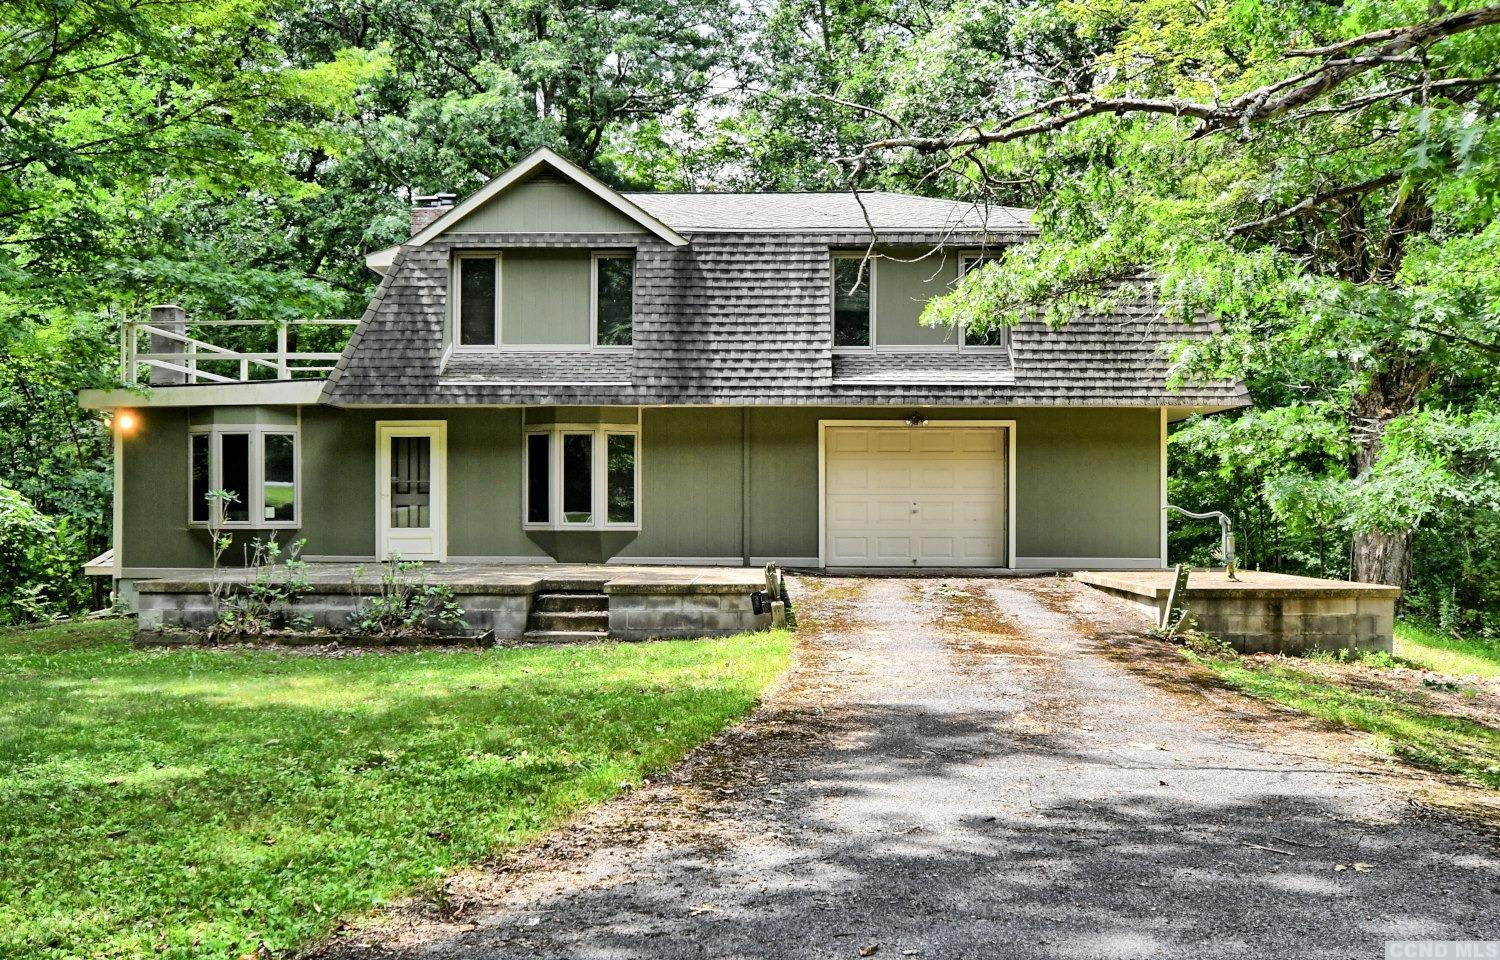 A Beautiful 24 Acre Parcel of Land with a 4 Bedroom, 3 Bath Home! The land features a pond, a creek, & privacy. The home features 4 bedrooms with a master bedroom & bath, 3 bathrooms, a spacious living room with a wood stove, a dining area, a kitchen, front & rear patios, a back deck, a 1 1/2 car garage, and a paved circular driveway. There's central air conditioning and the foundation is insulated with Zonolite Masonry Insulation. The pond is behind the home and the Plattekill Creek is at the back of the property. It's an Amazing Property & Home! Please view our 3D virtual tour of the home and property.